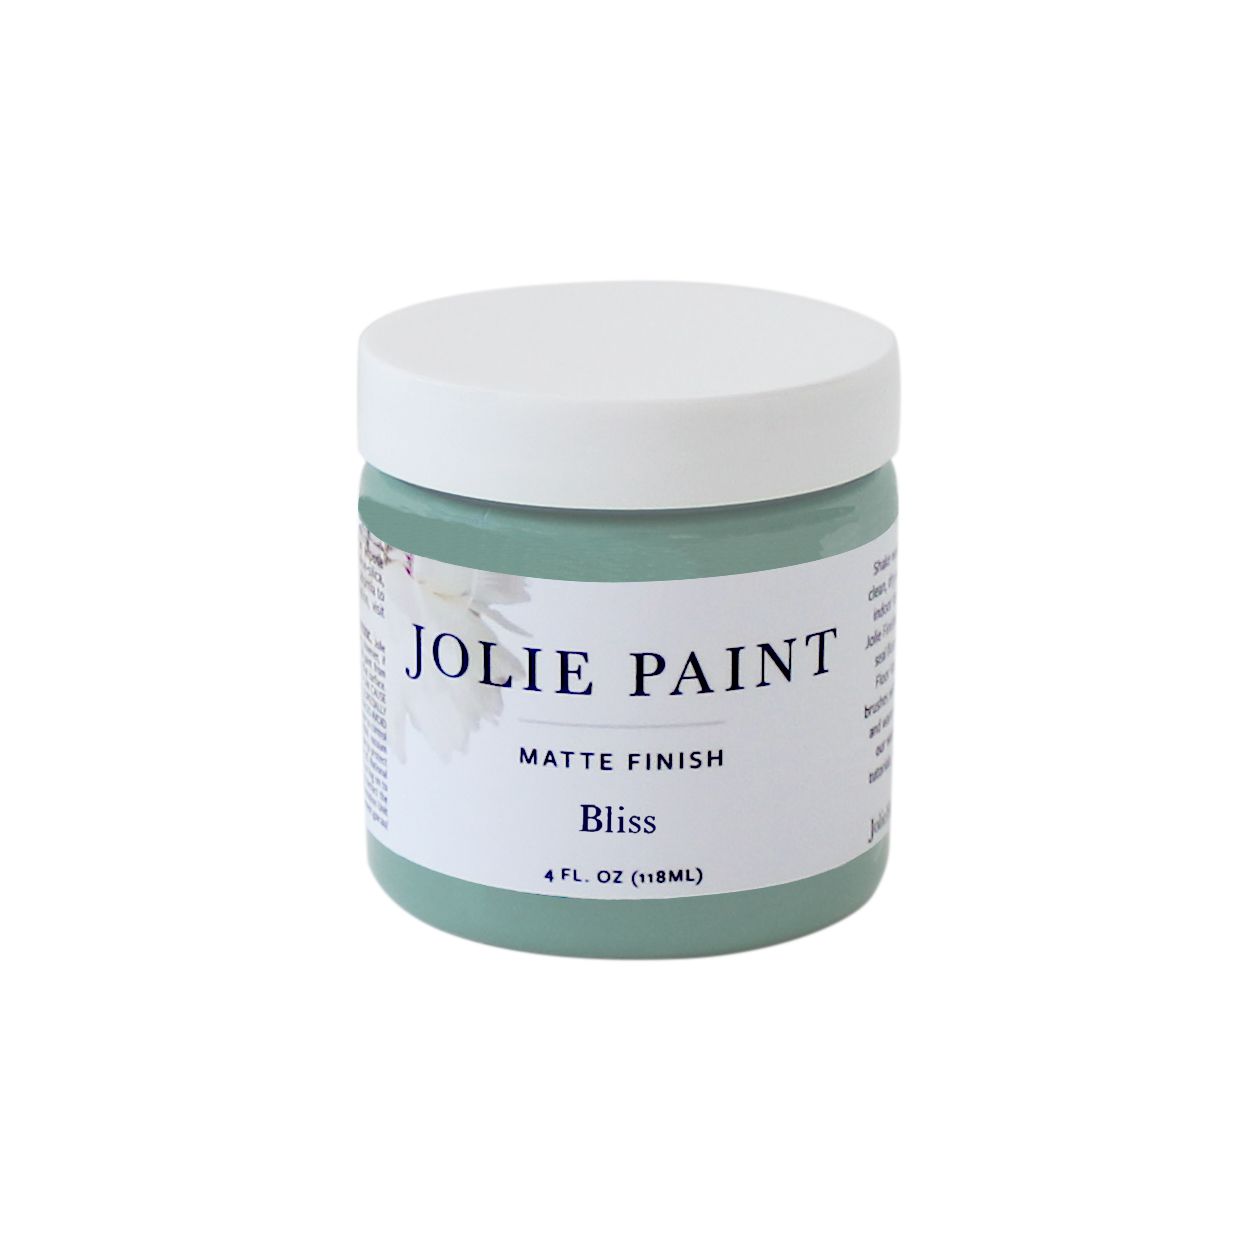 Bliss - Jolie Paint (s)